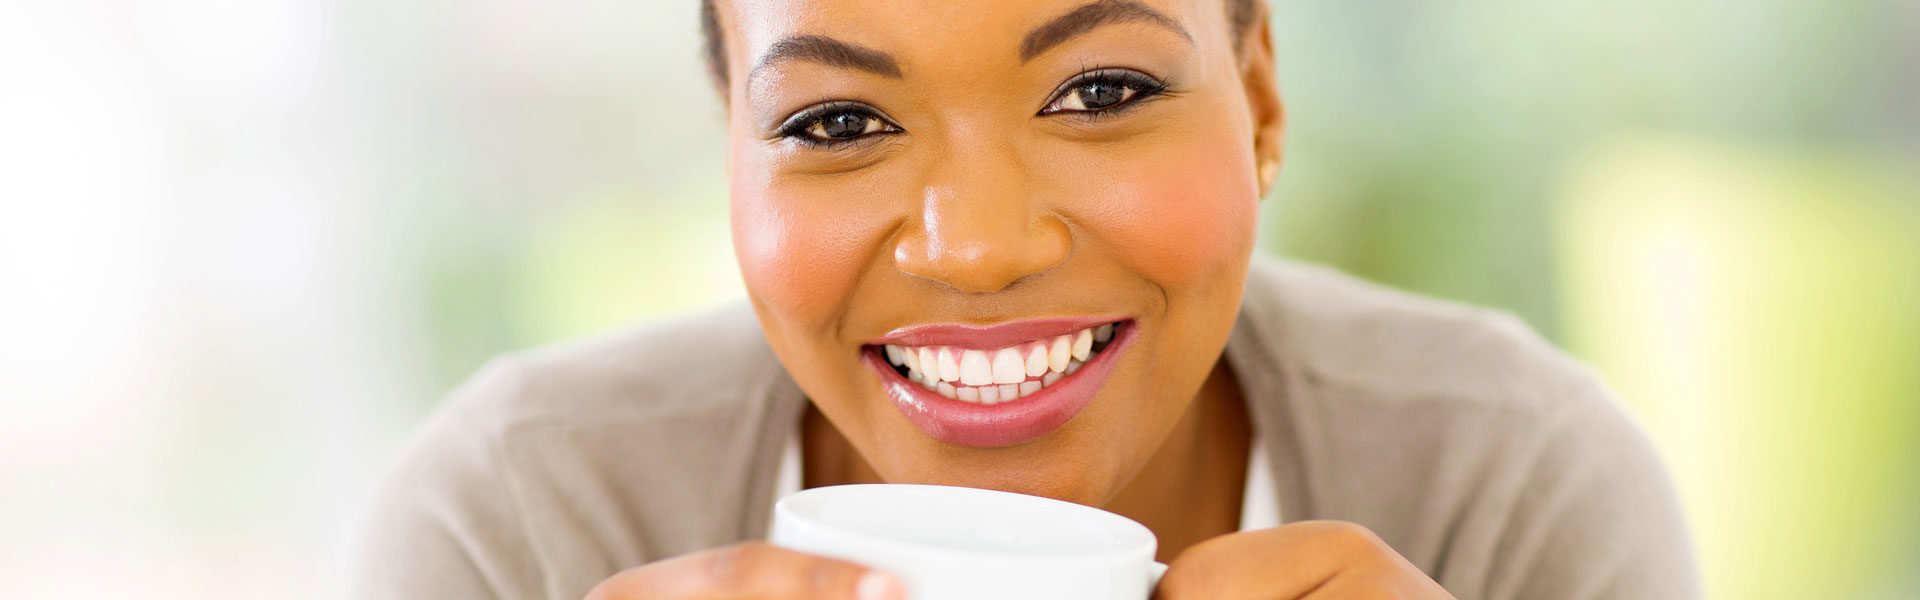 Tips to Follow After Root Canal Treatment